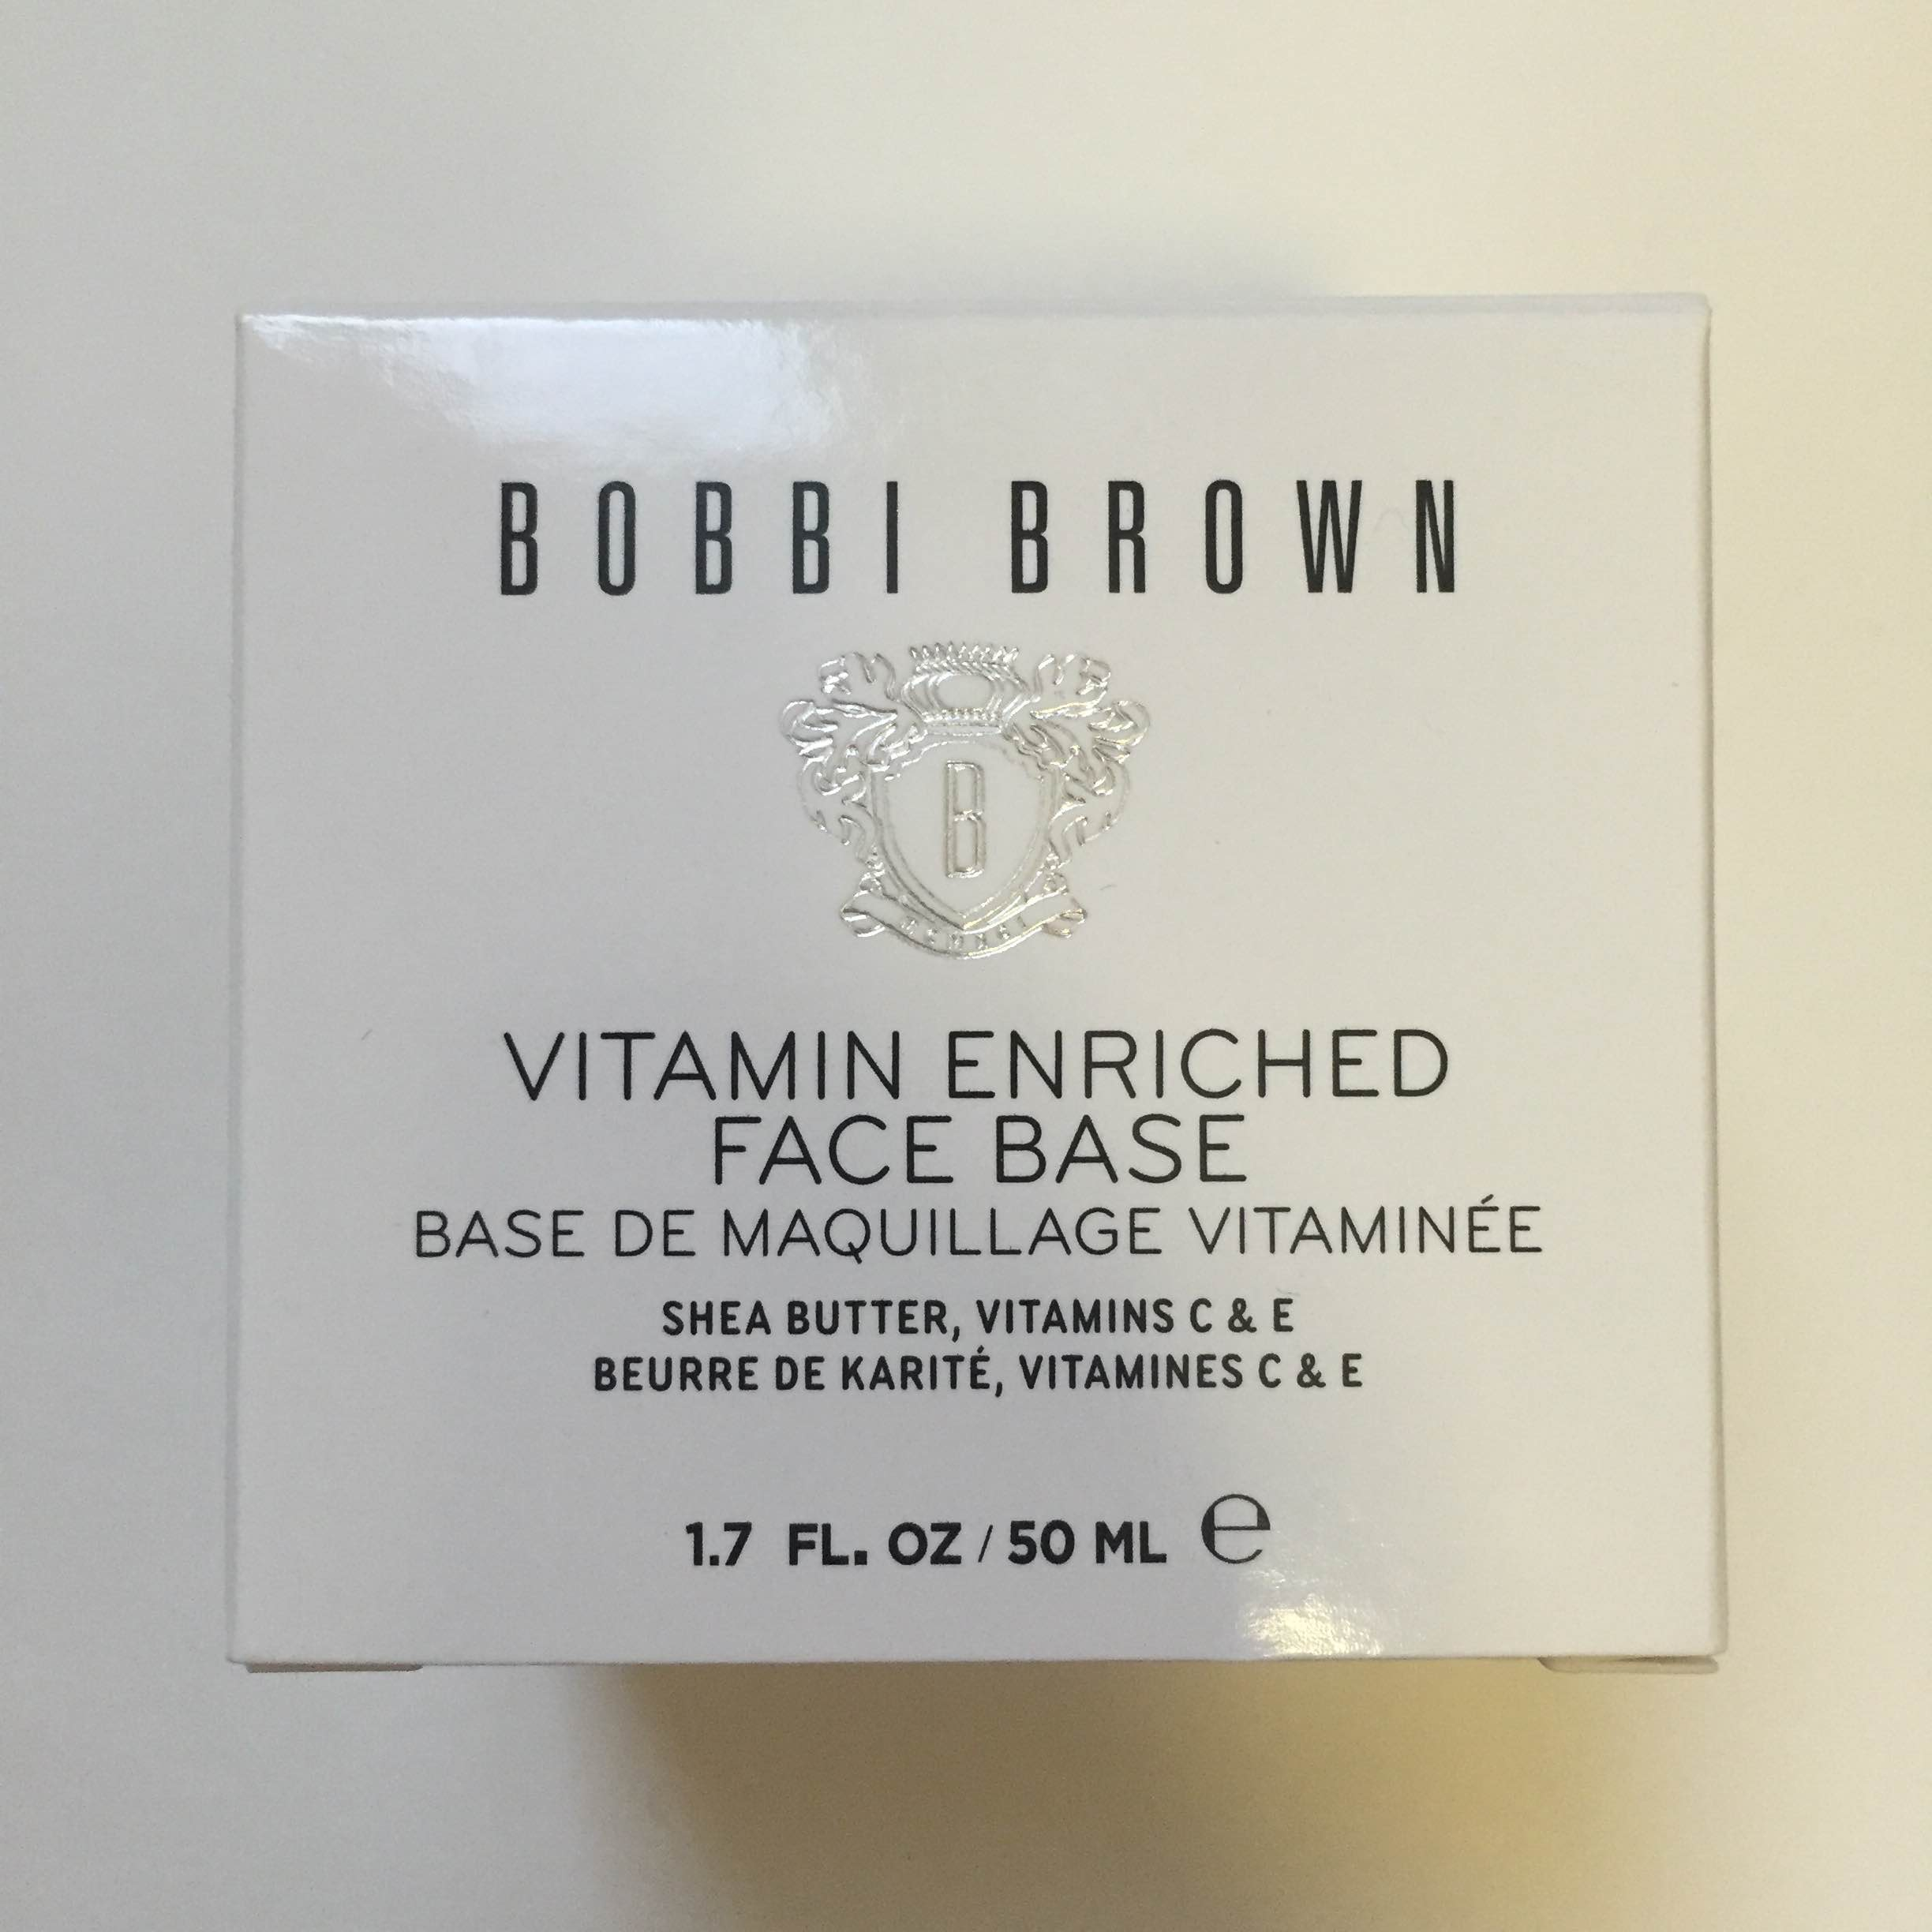 Bobbi Brown Vitamin Enriched Face Base (Primer) Review